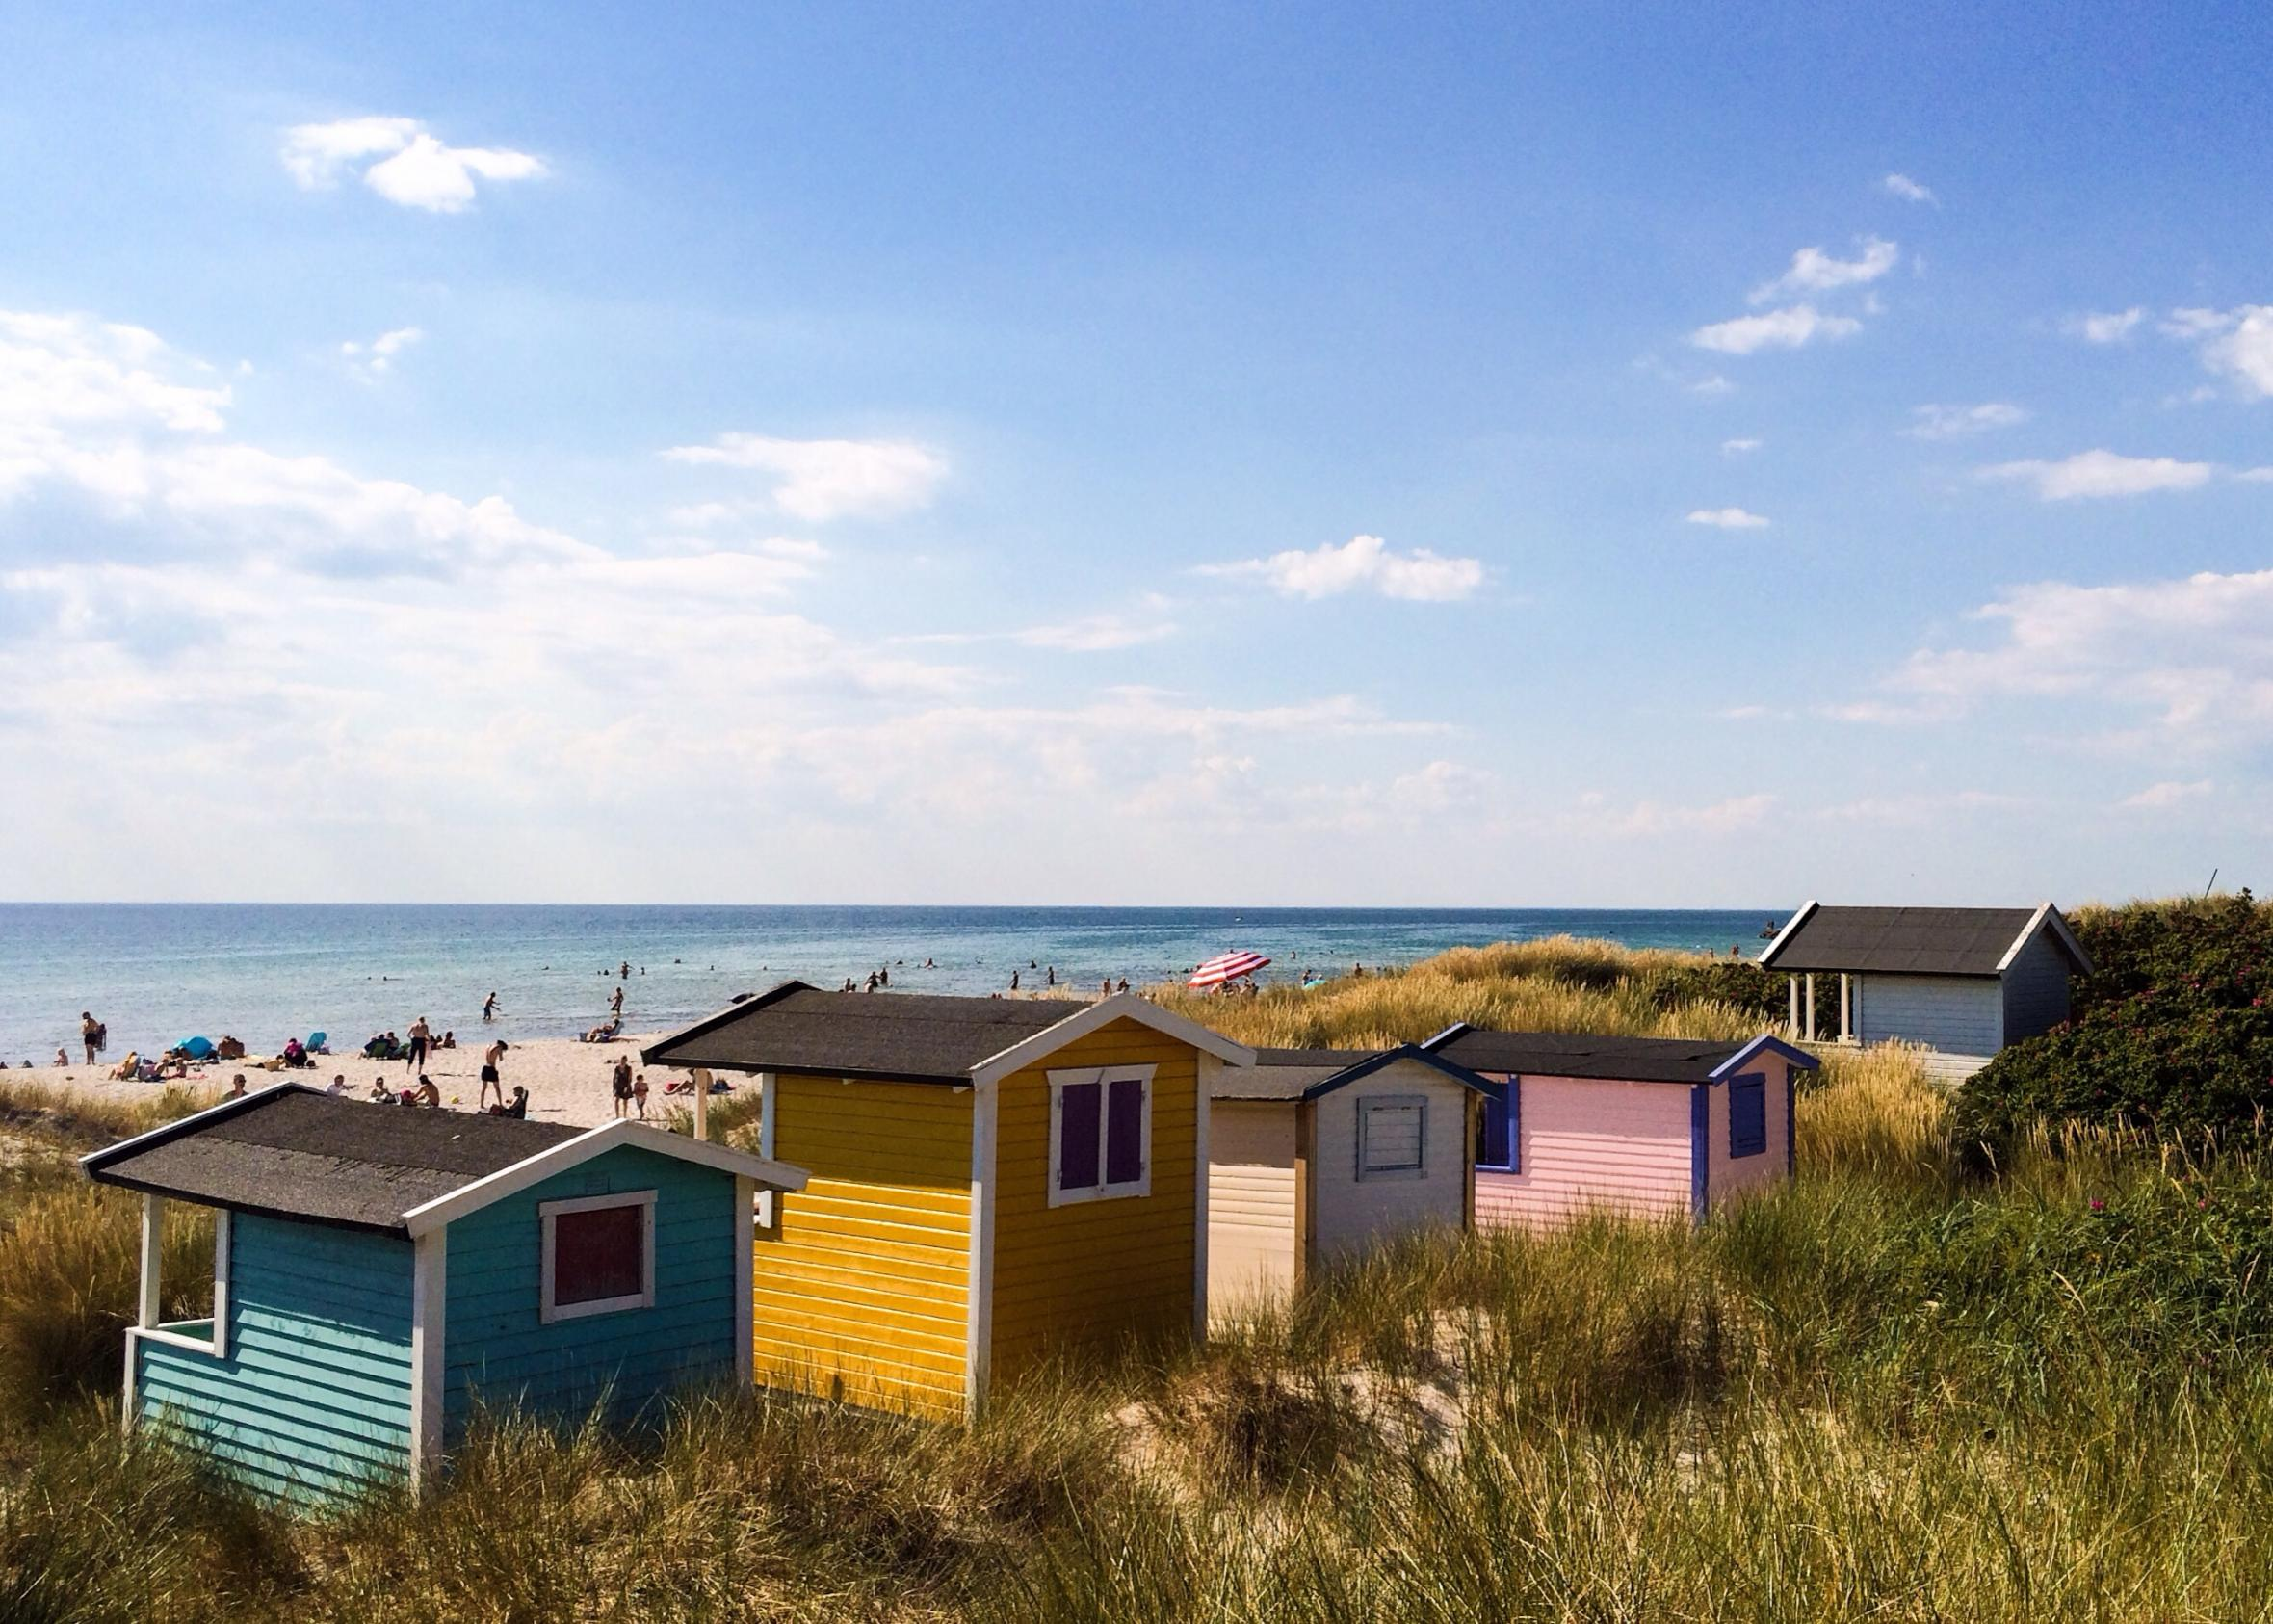 beach huts in Skanör